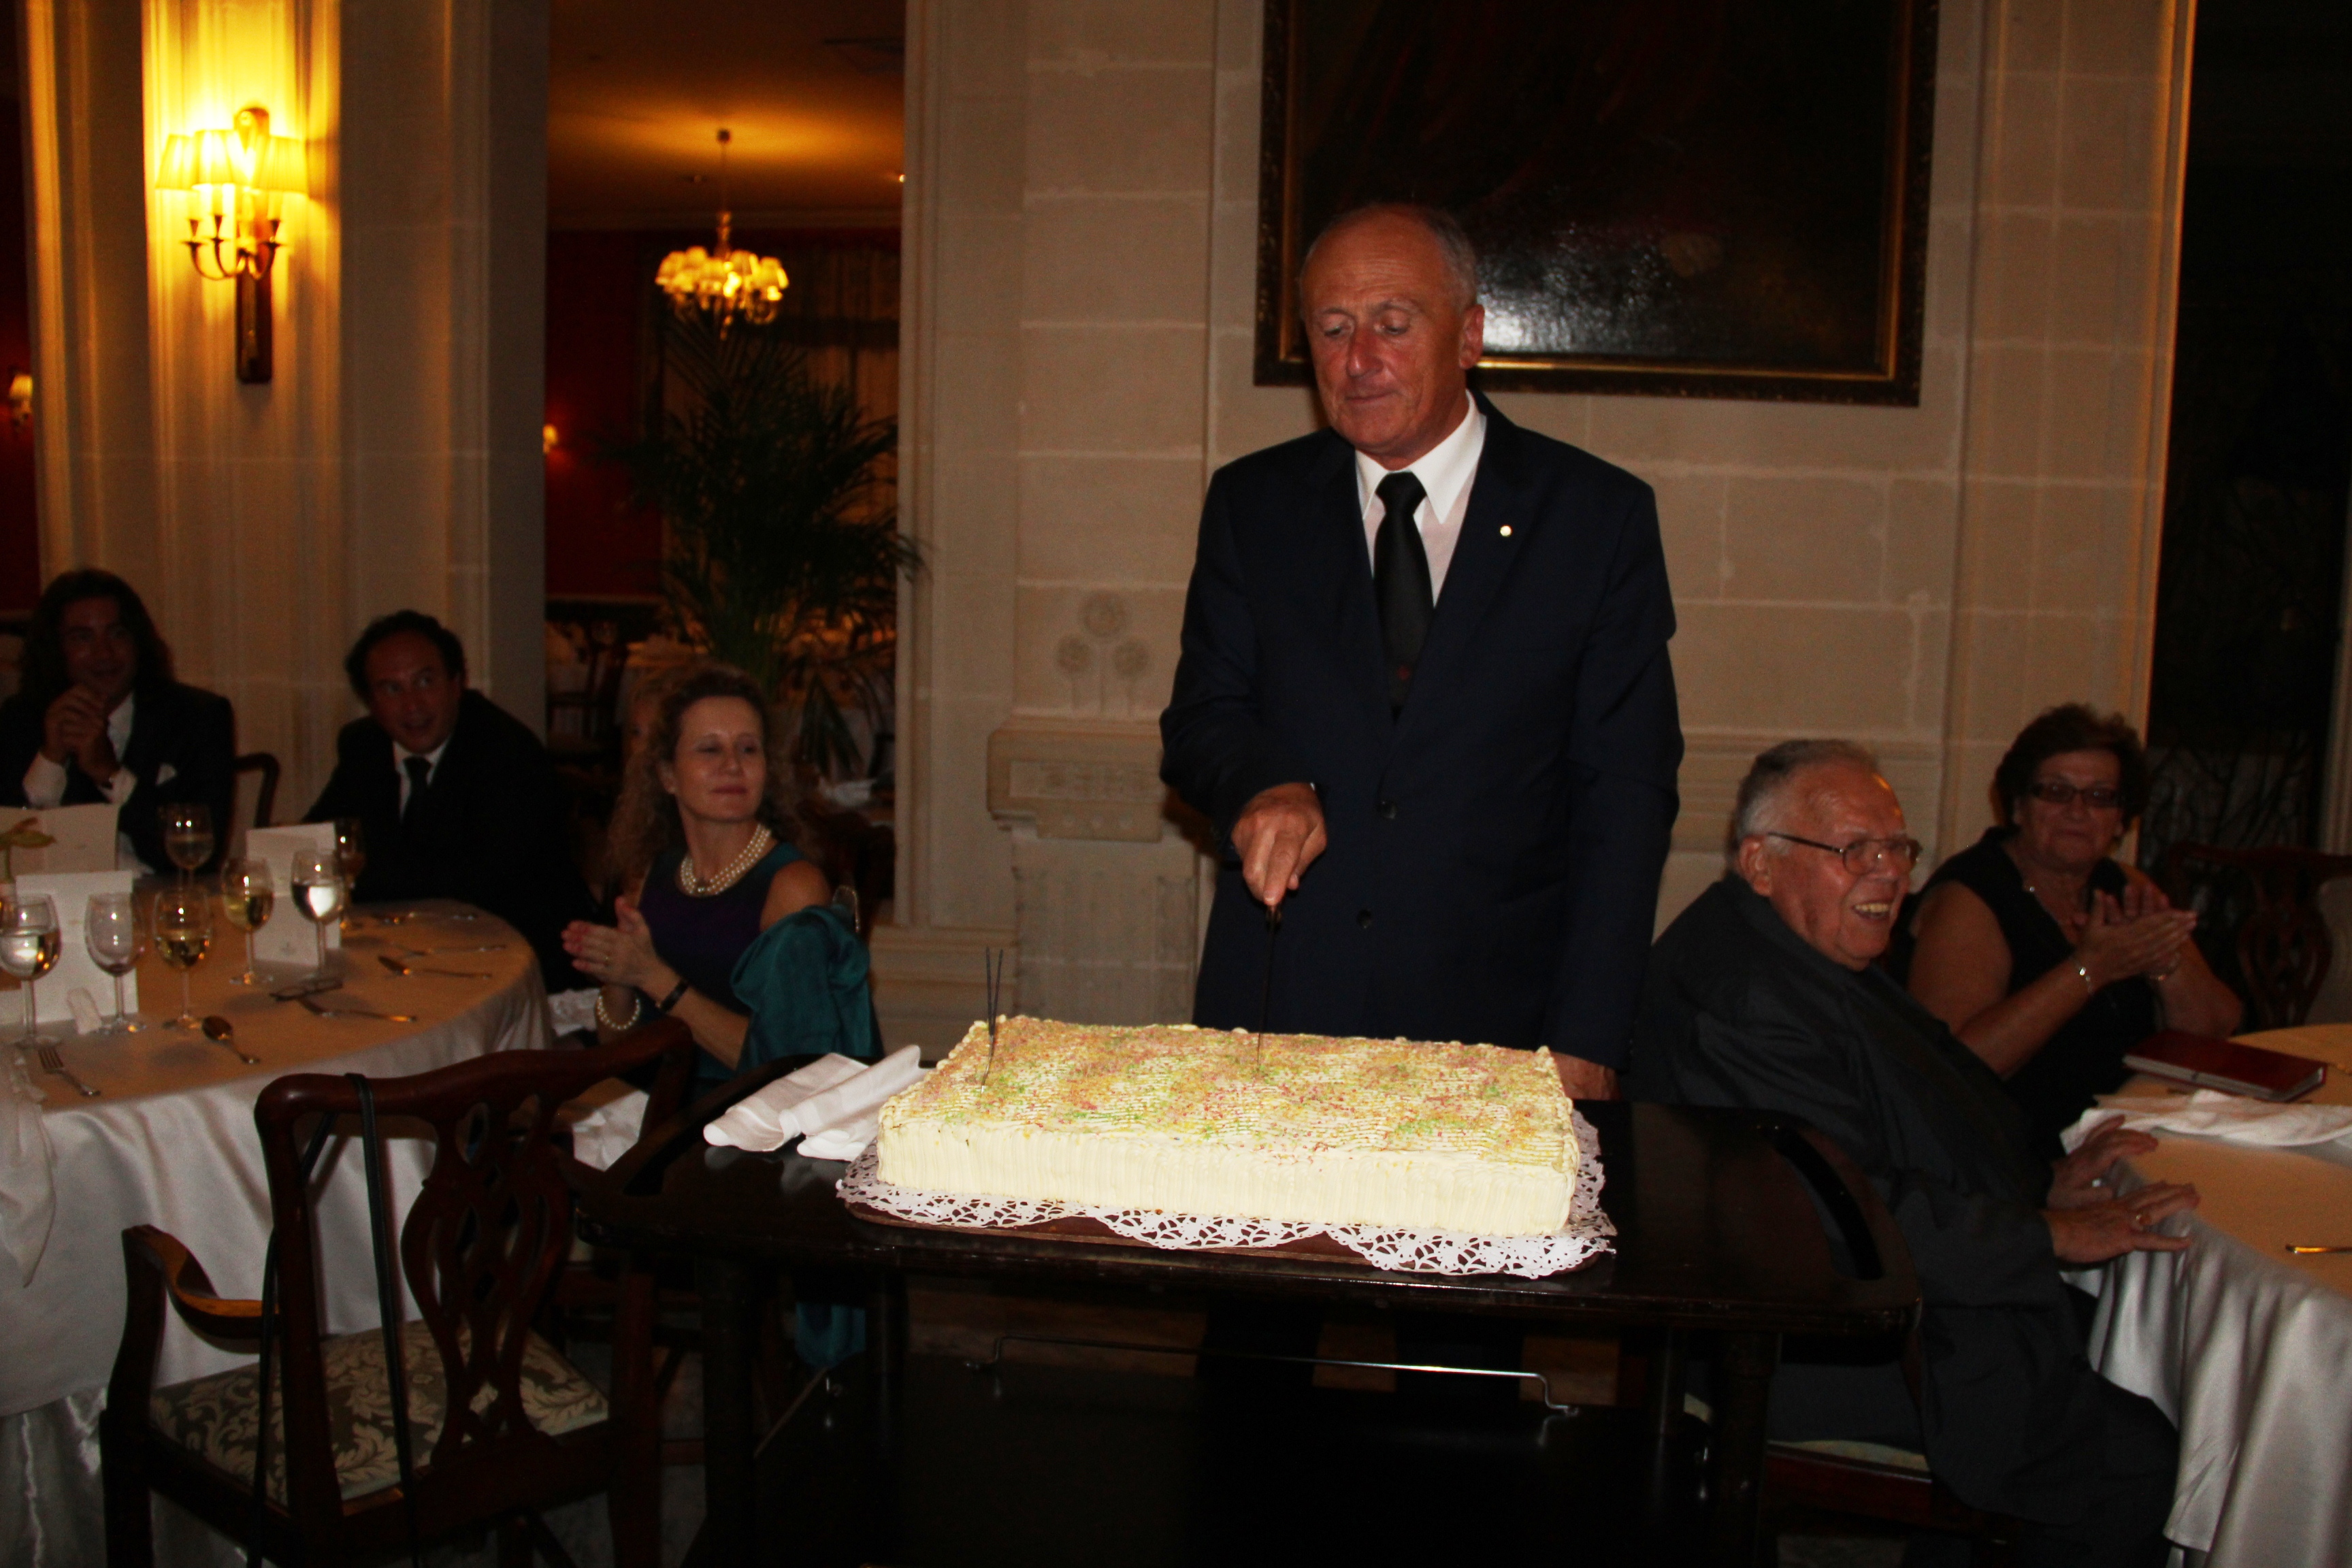 H.E. the Lieutenant cutting the anniversary cake.